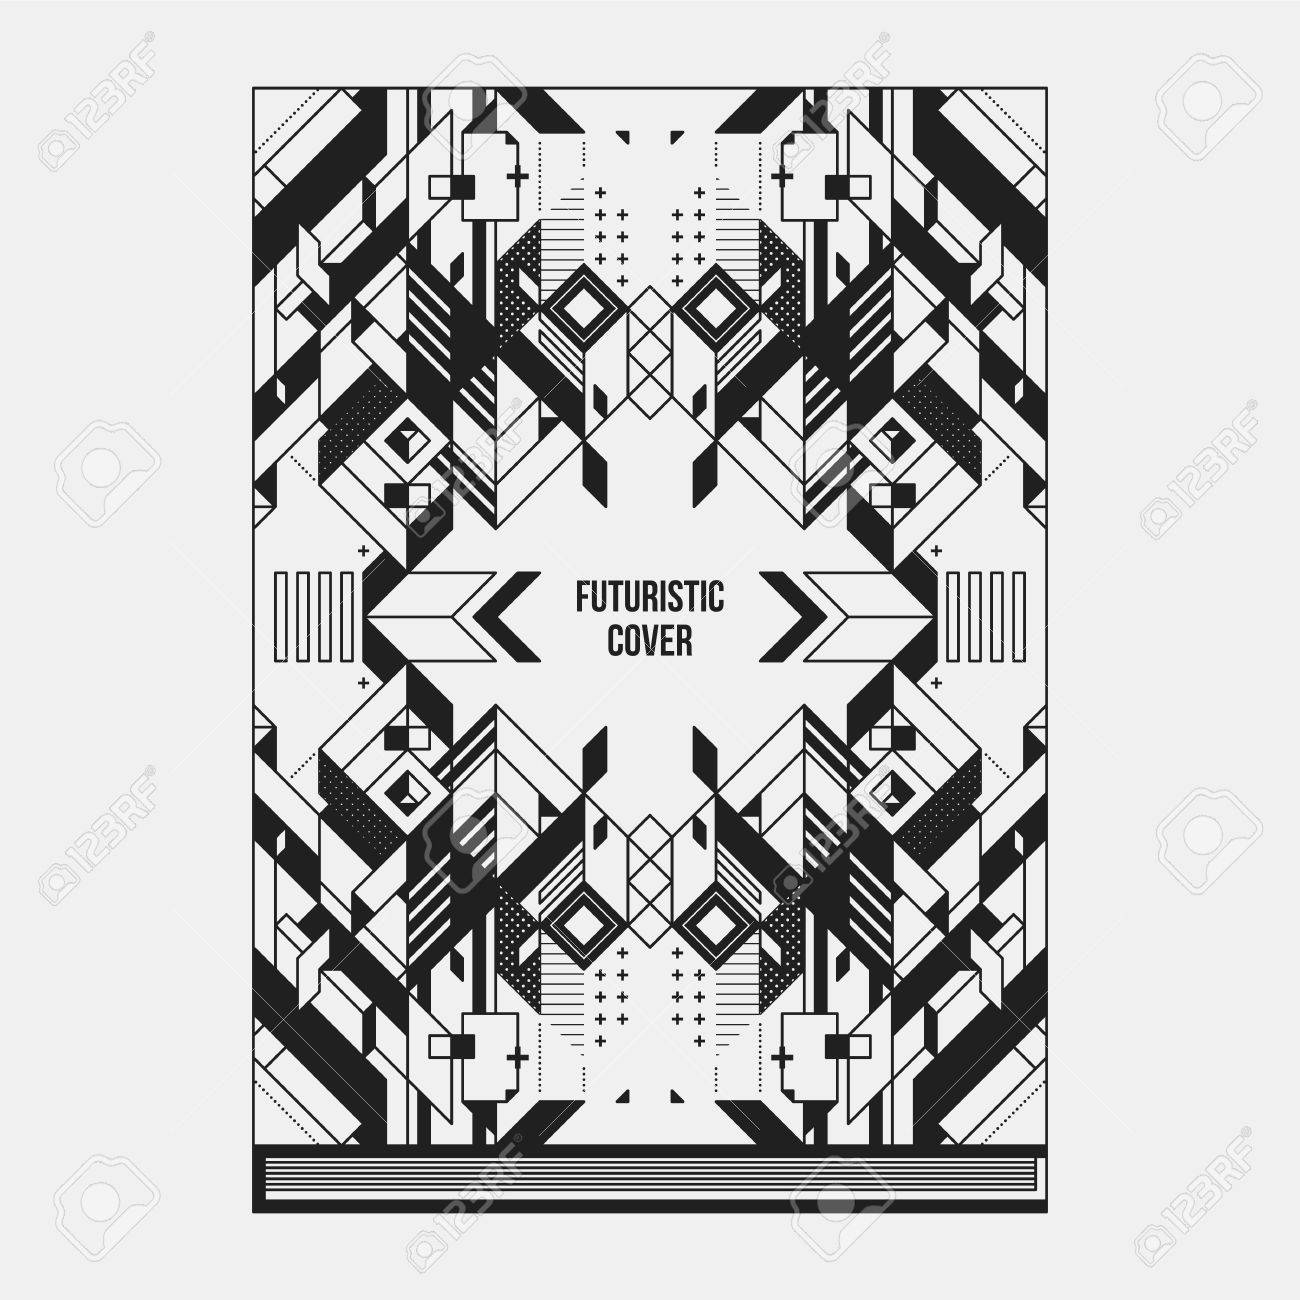 Book/poster/magazine Cover Design Template With Abstract Symmetric ...